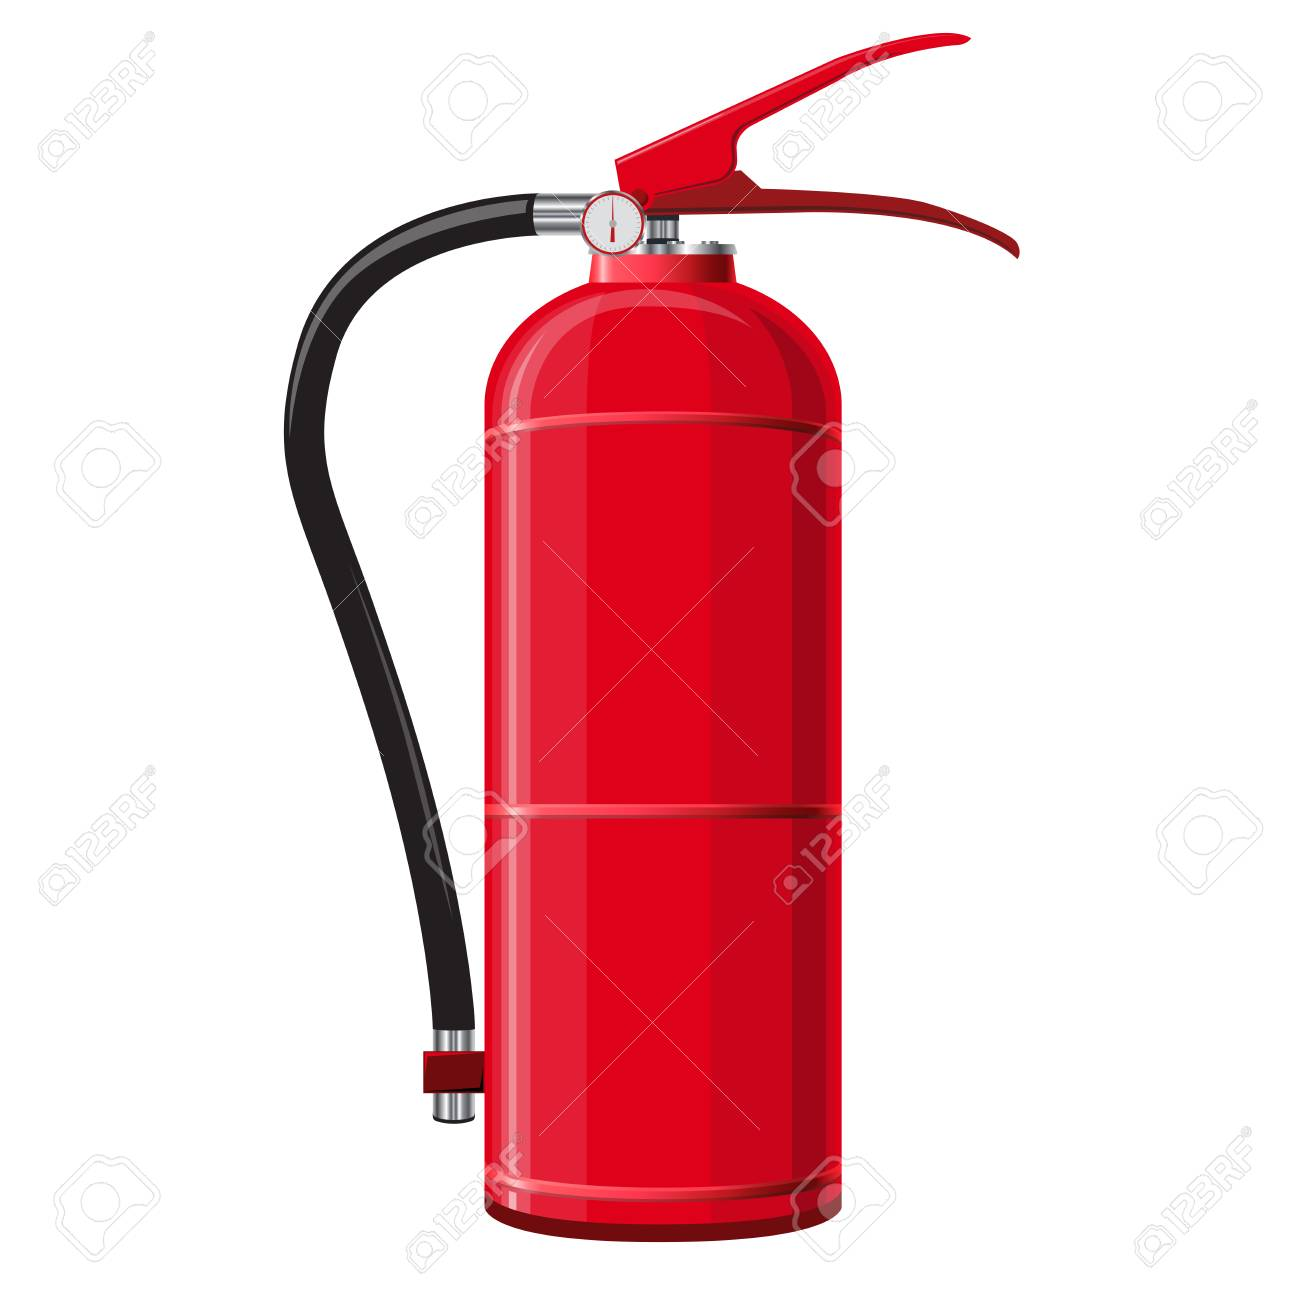 79733071 red extinguisher with hose safety fire fighting equipment firefighting equipment and fire protection